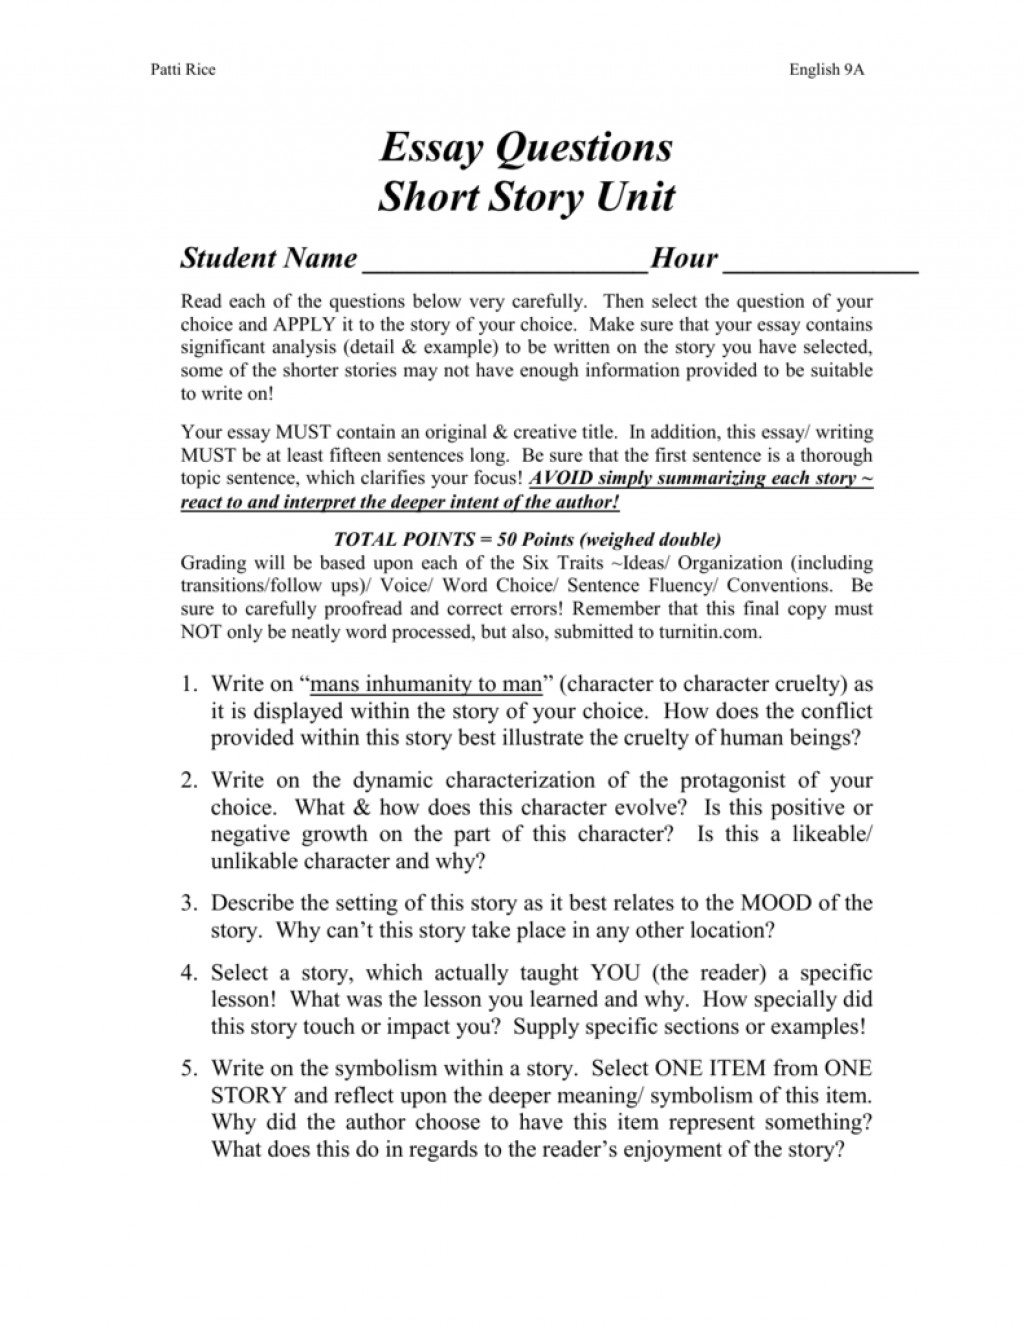 001 Essay Example Short Story 008001643 1 Incredible For College Writing Contests High School Students No Entry Fee Large